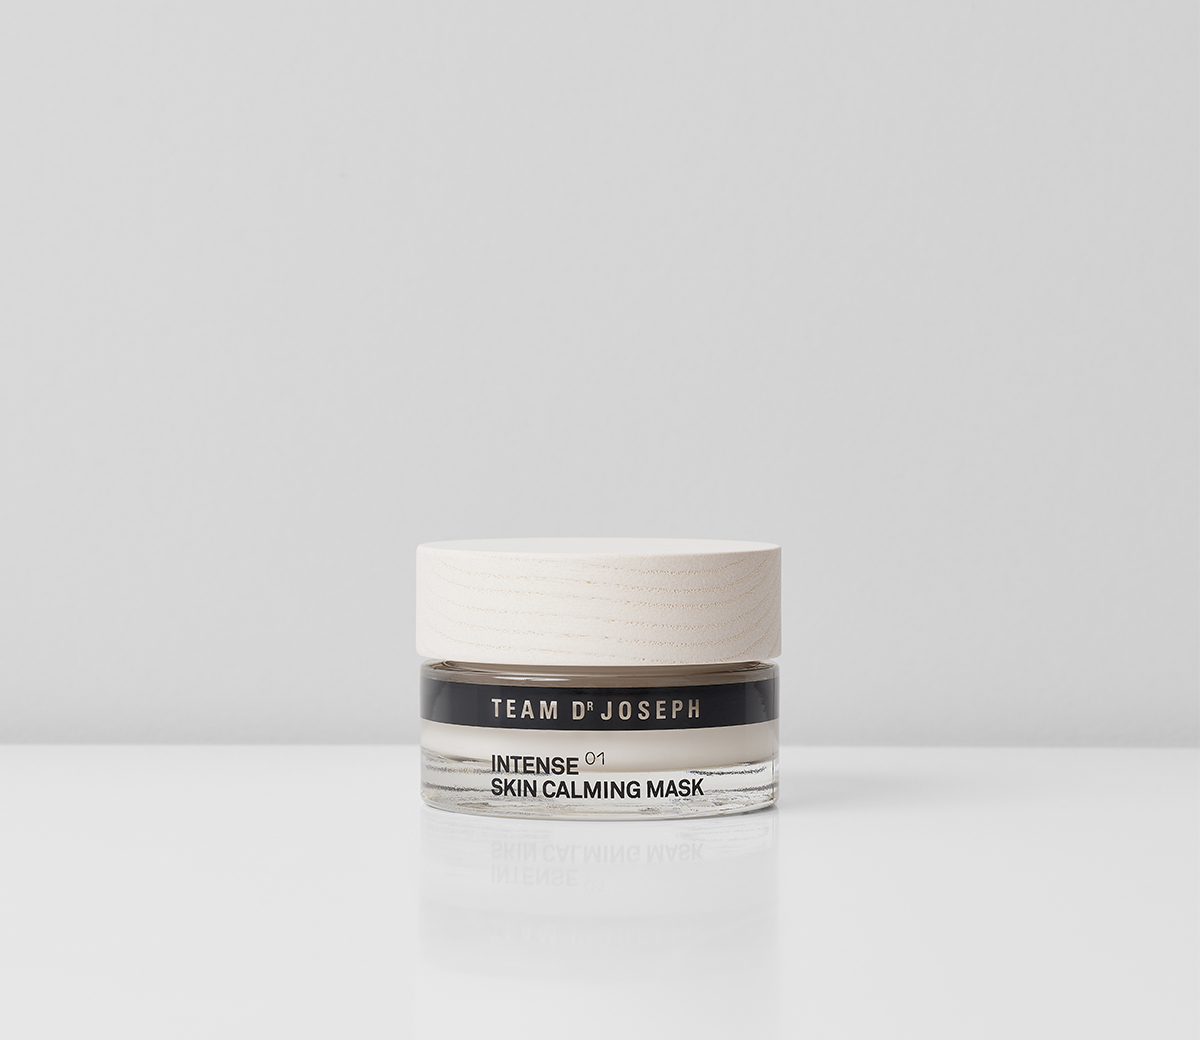 Intense Skin Calming Mask, 50 ml Balancing and calming intensive face mask